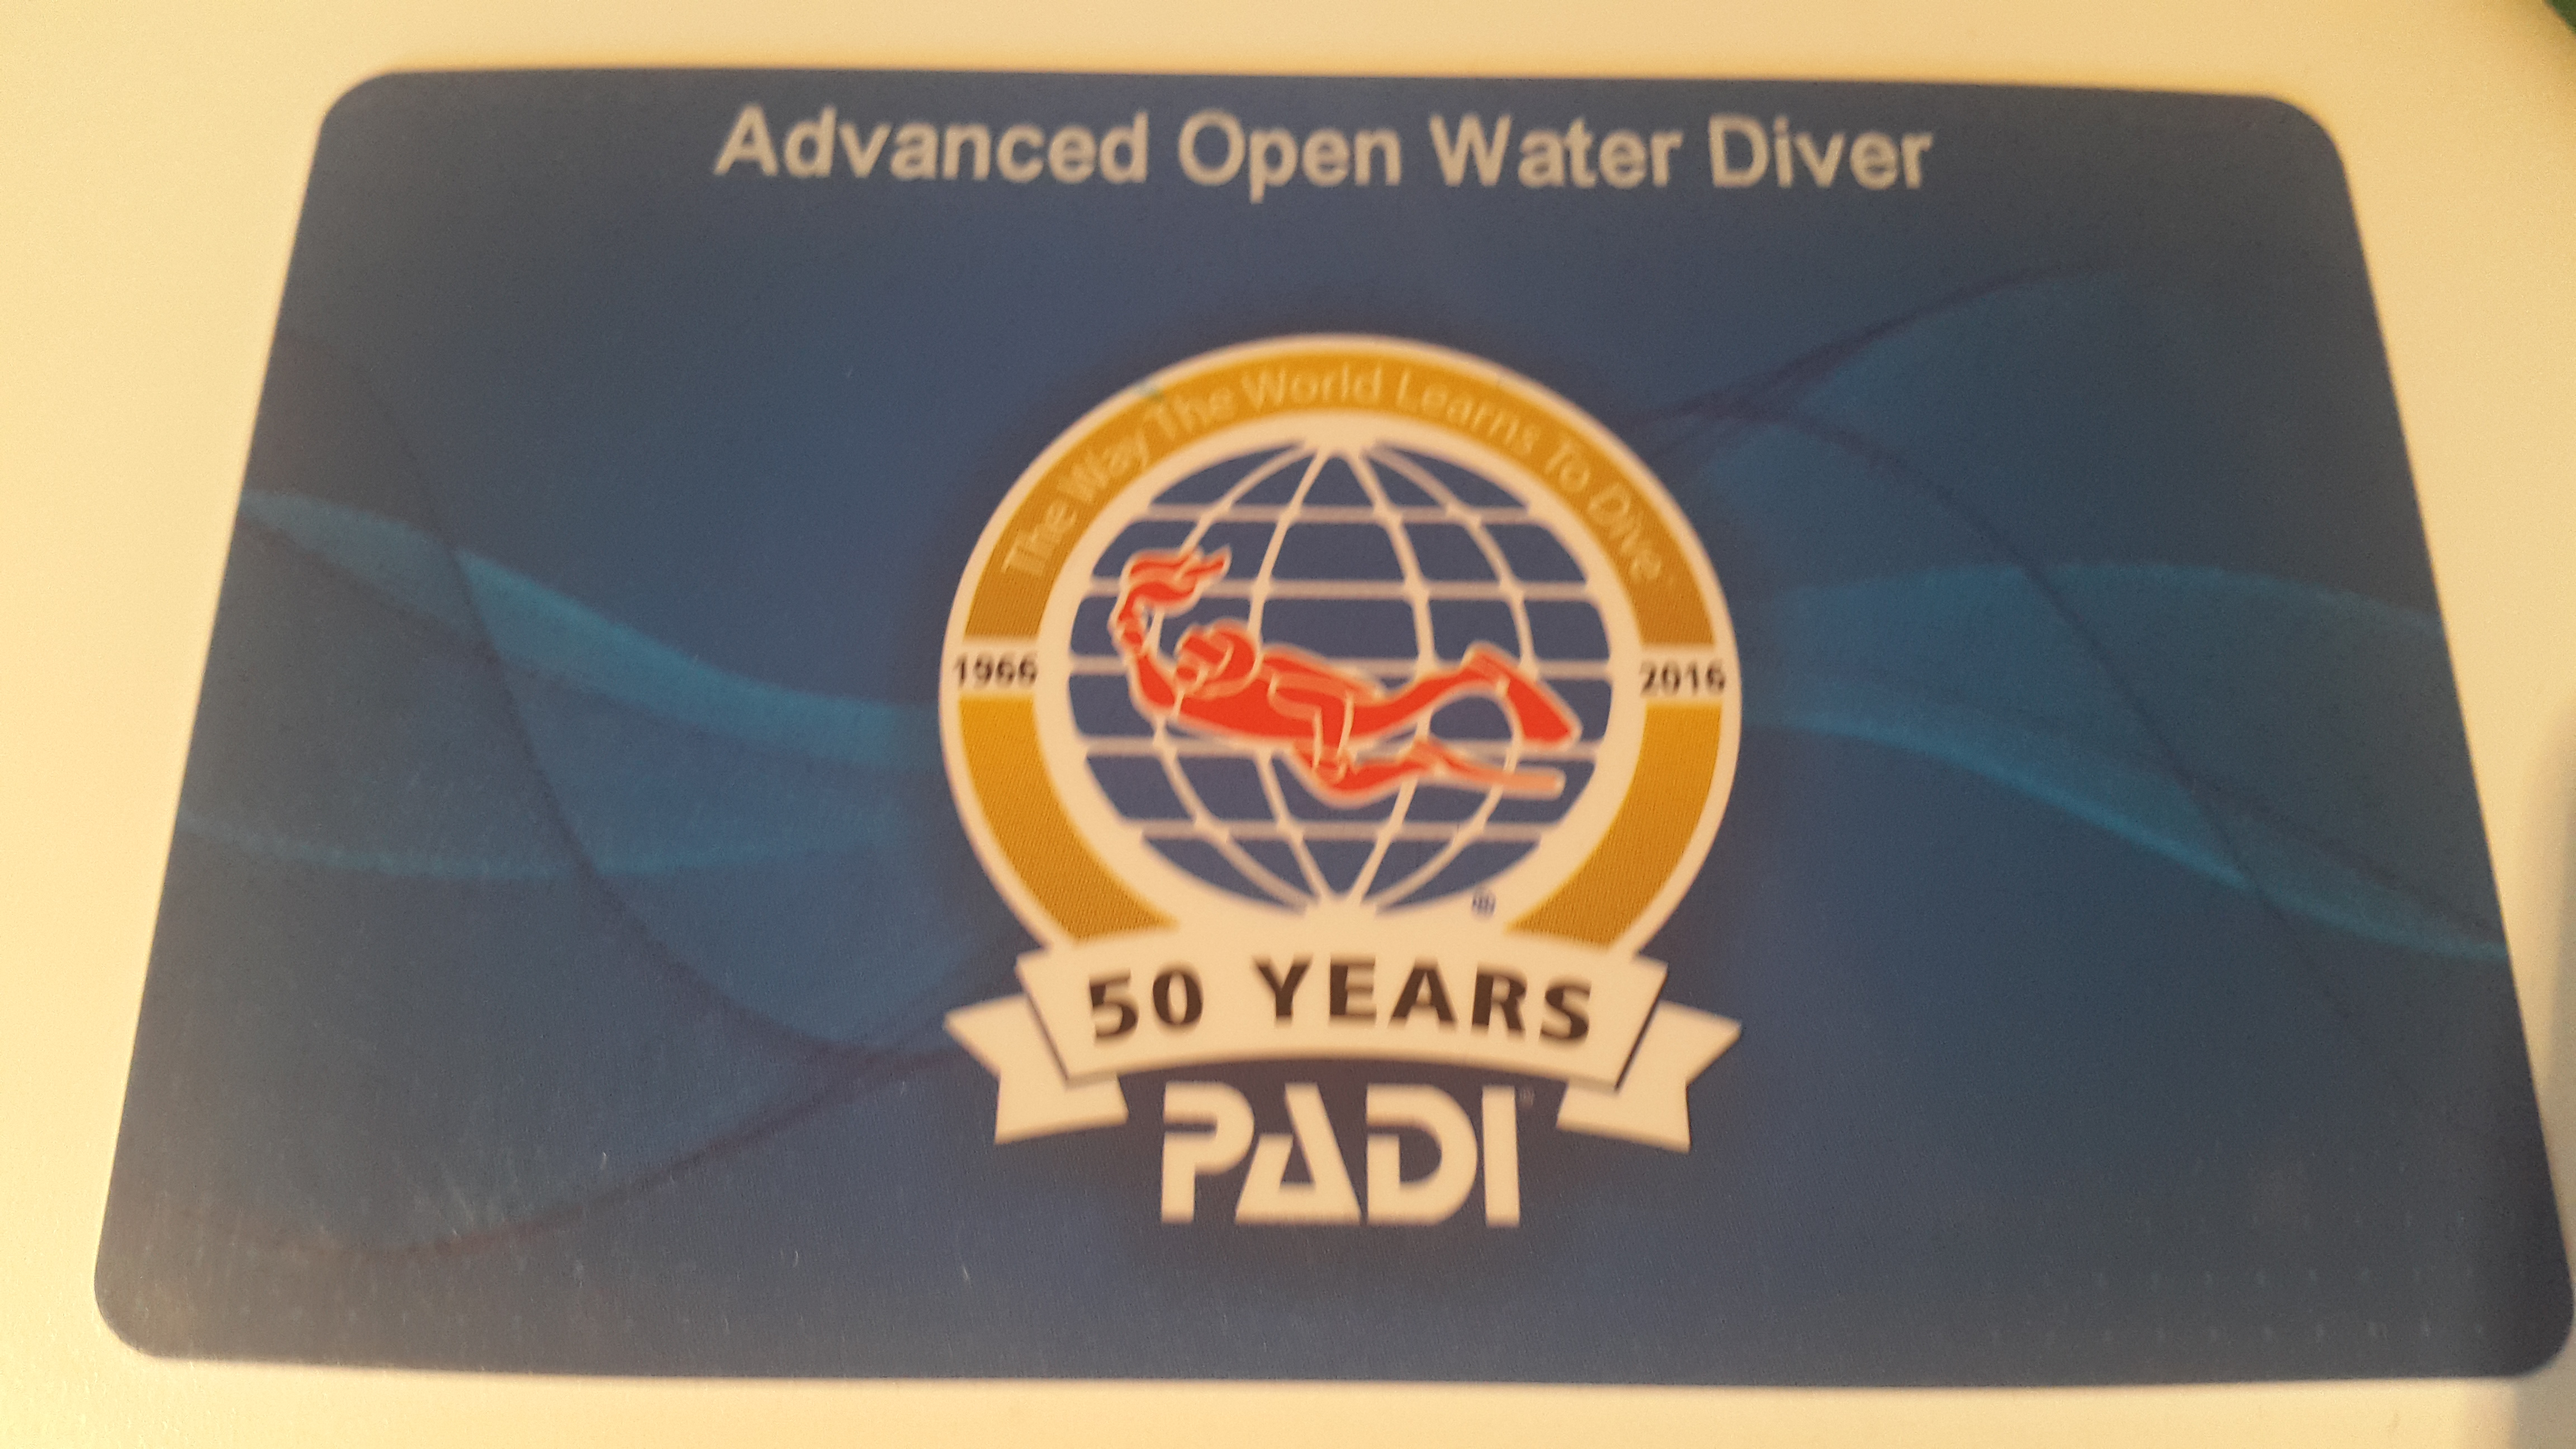 PADI Advanced Open Water Diver med Dykhuset